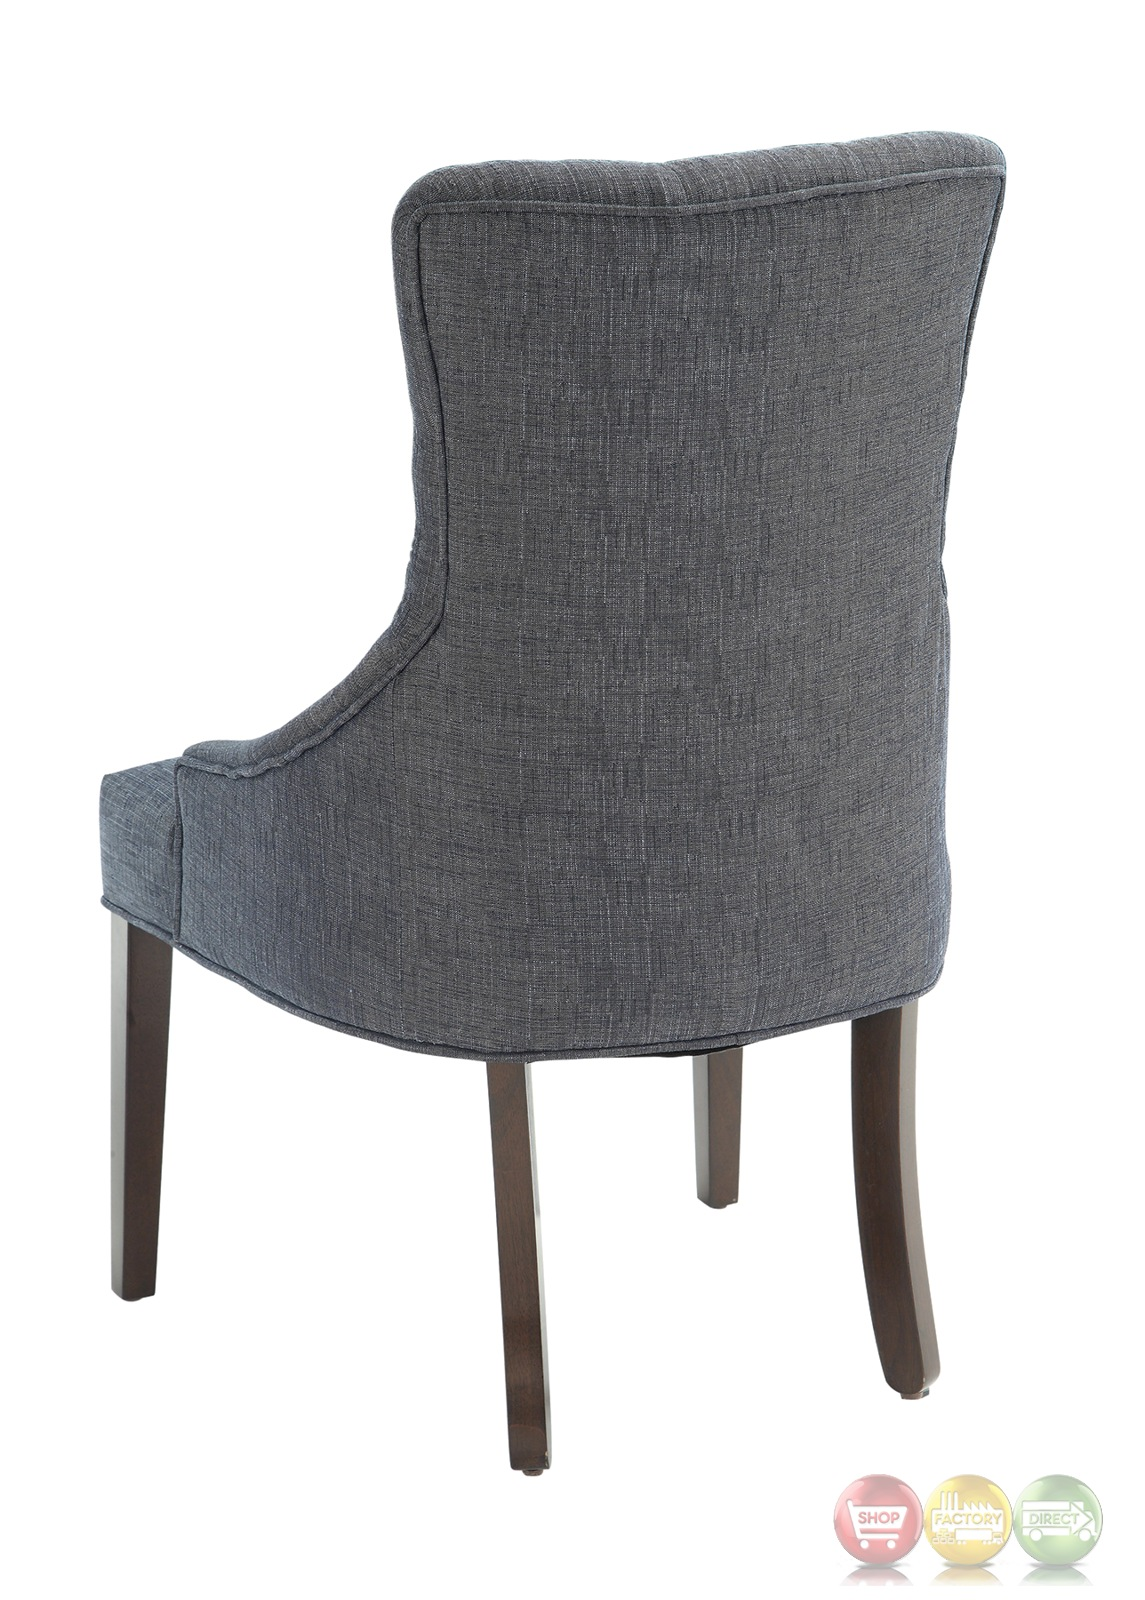 Caprice Button Tufted Blue Grey Linen Accent Chair